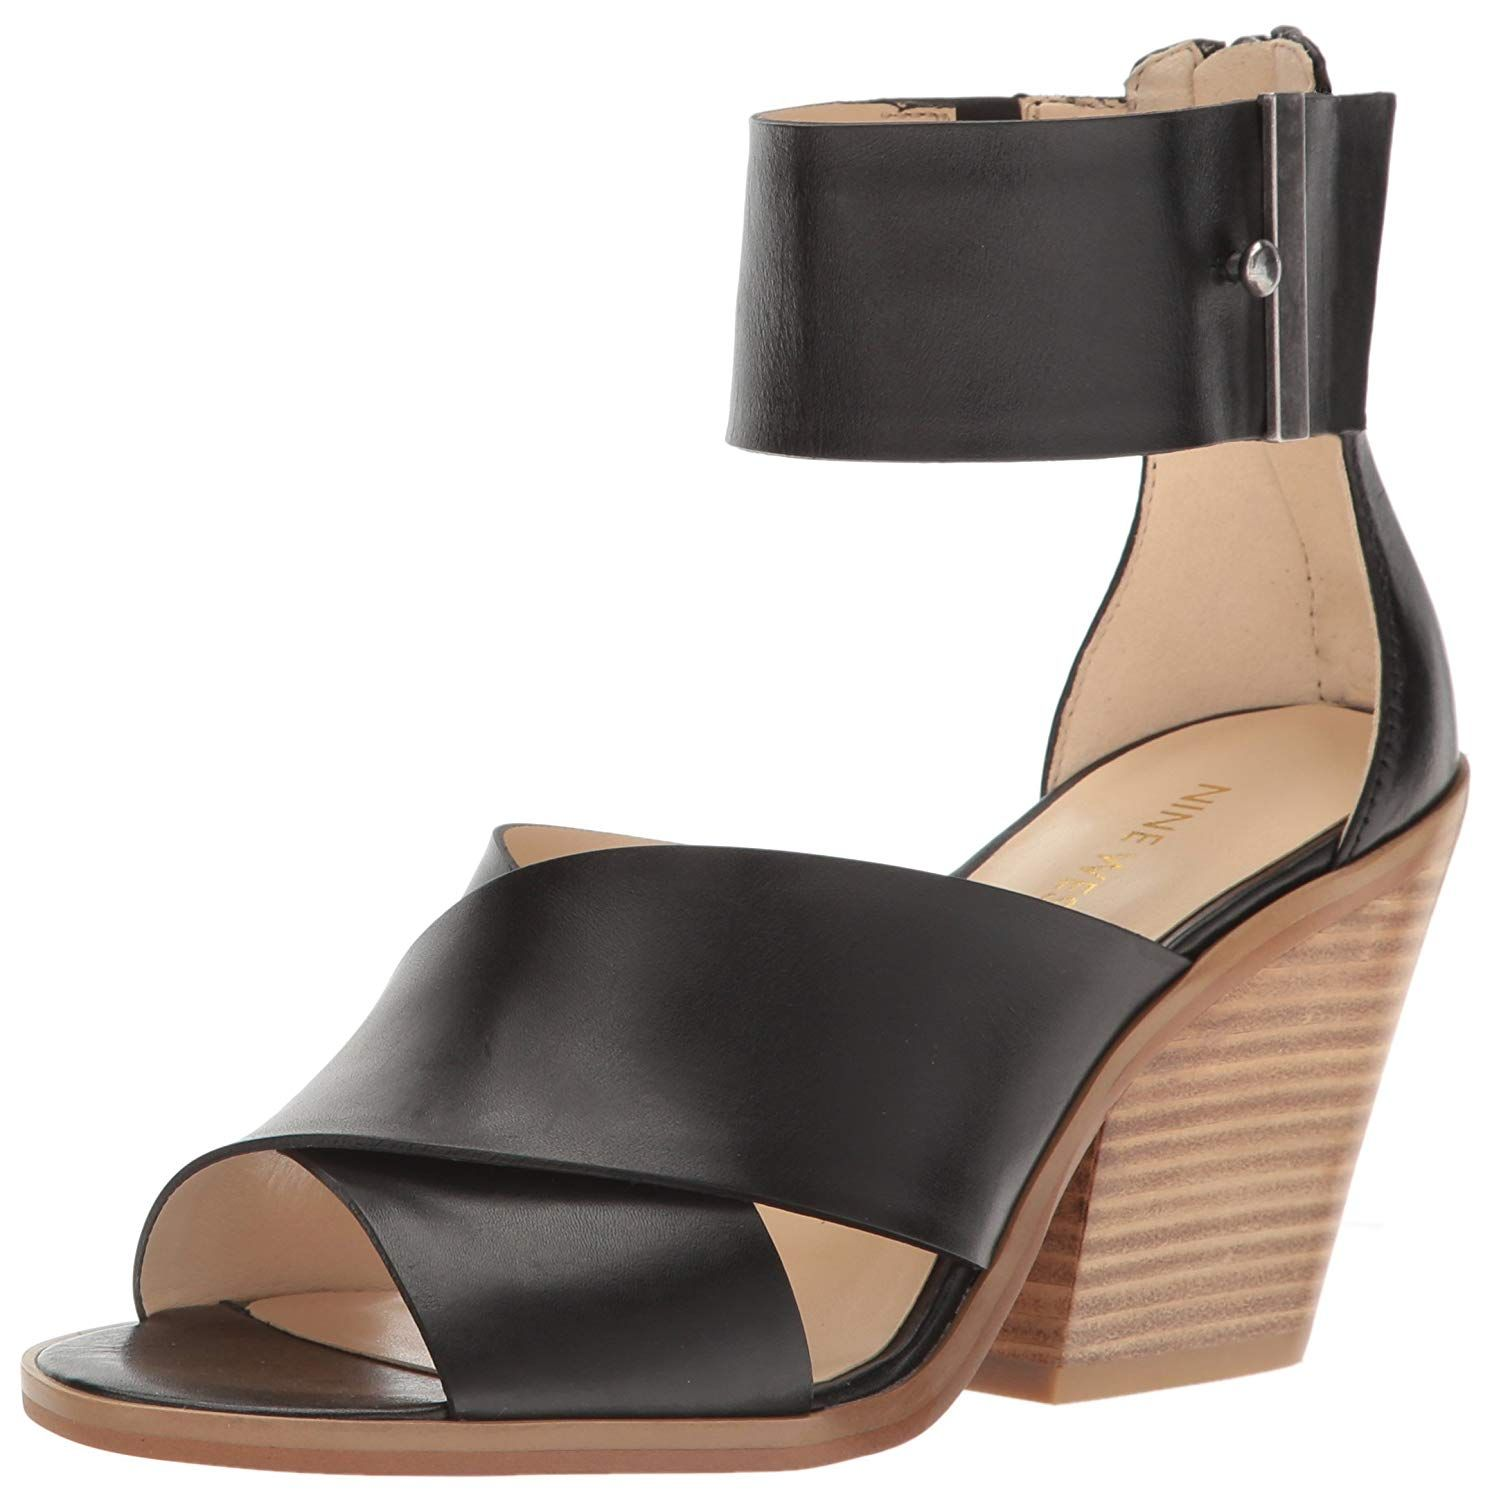 207ee912875 Nine West Women s Yannah Leather Wedge Sandal. Nine west offers a quick  edit of the